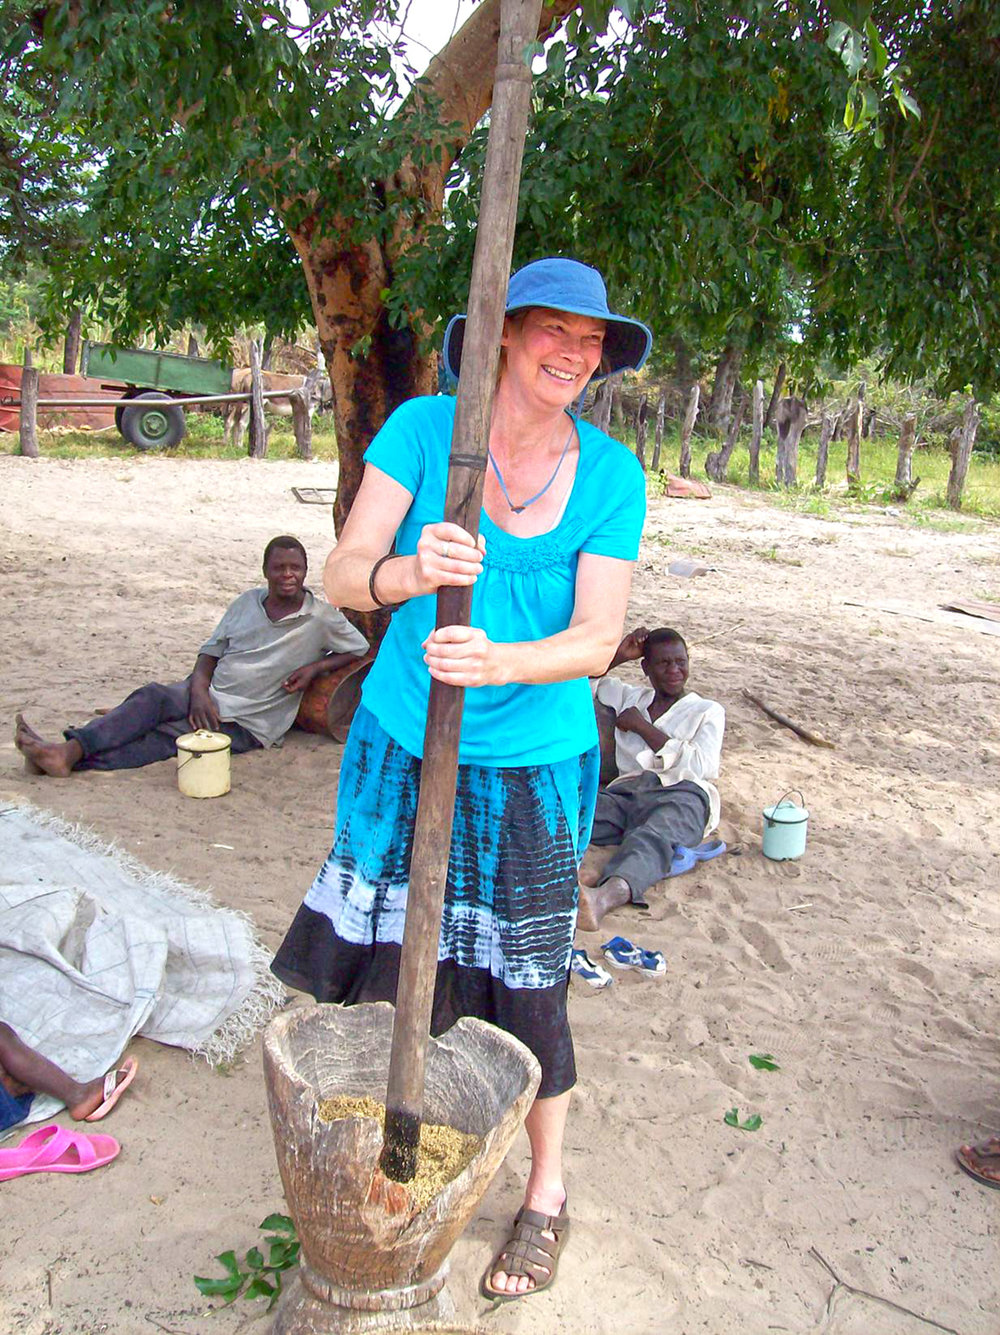 Virginia grinding grain for To Love A child in Zimbabwe.